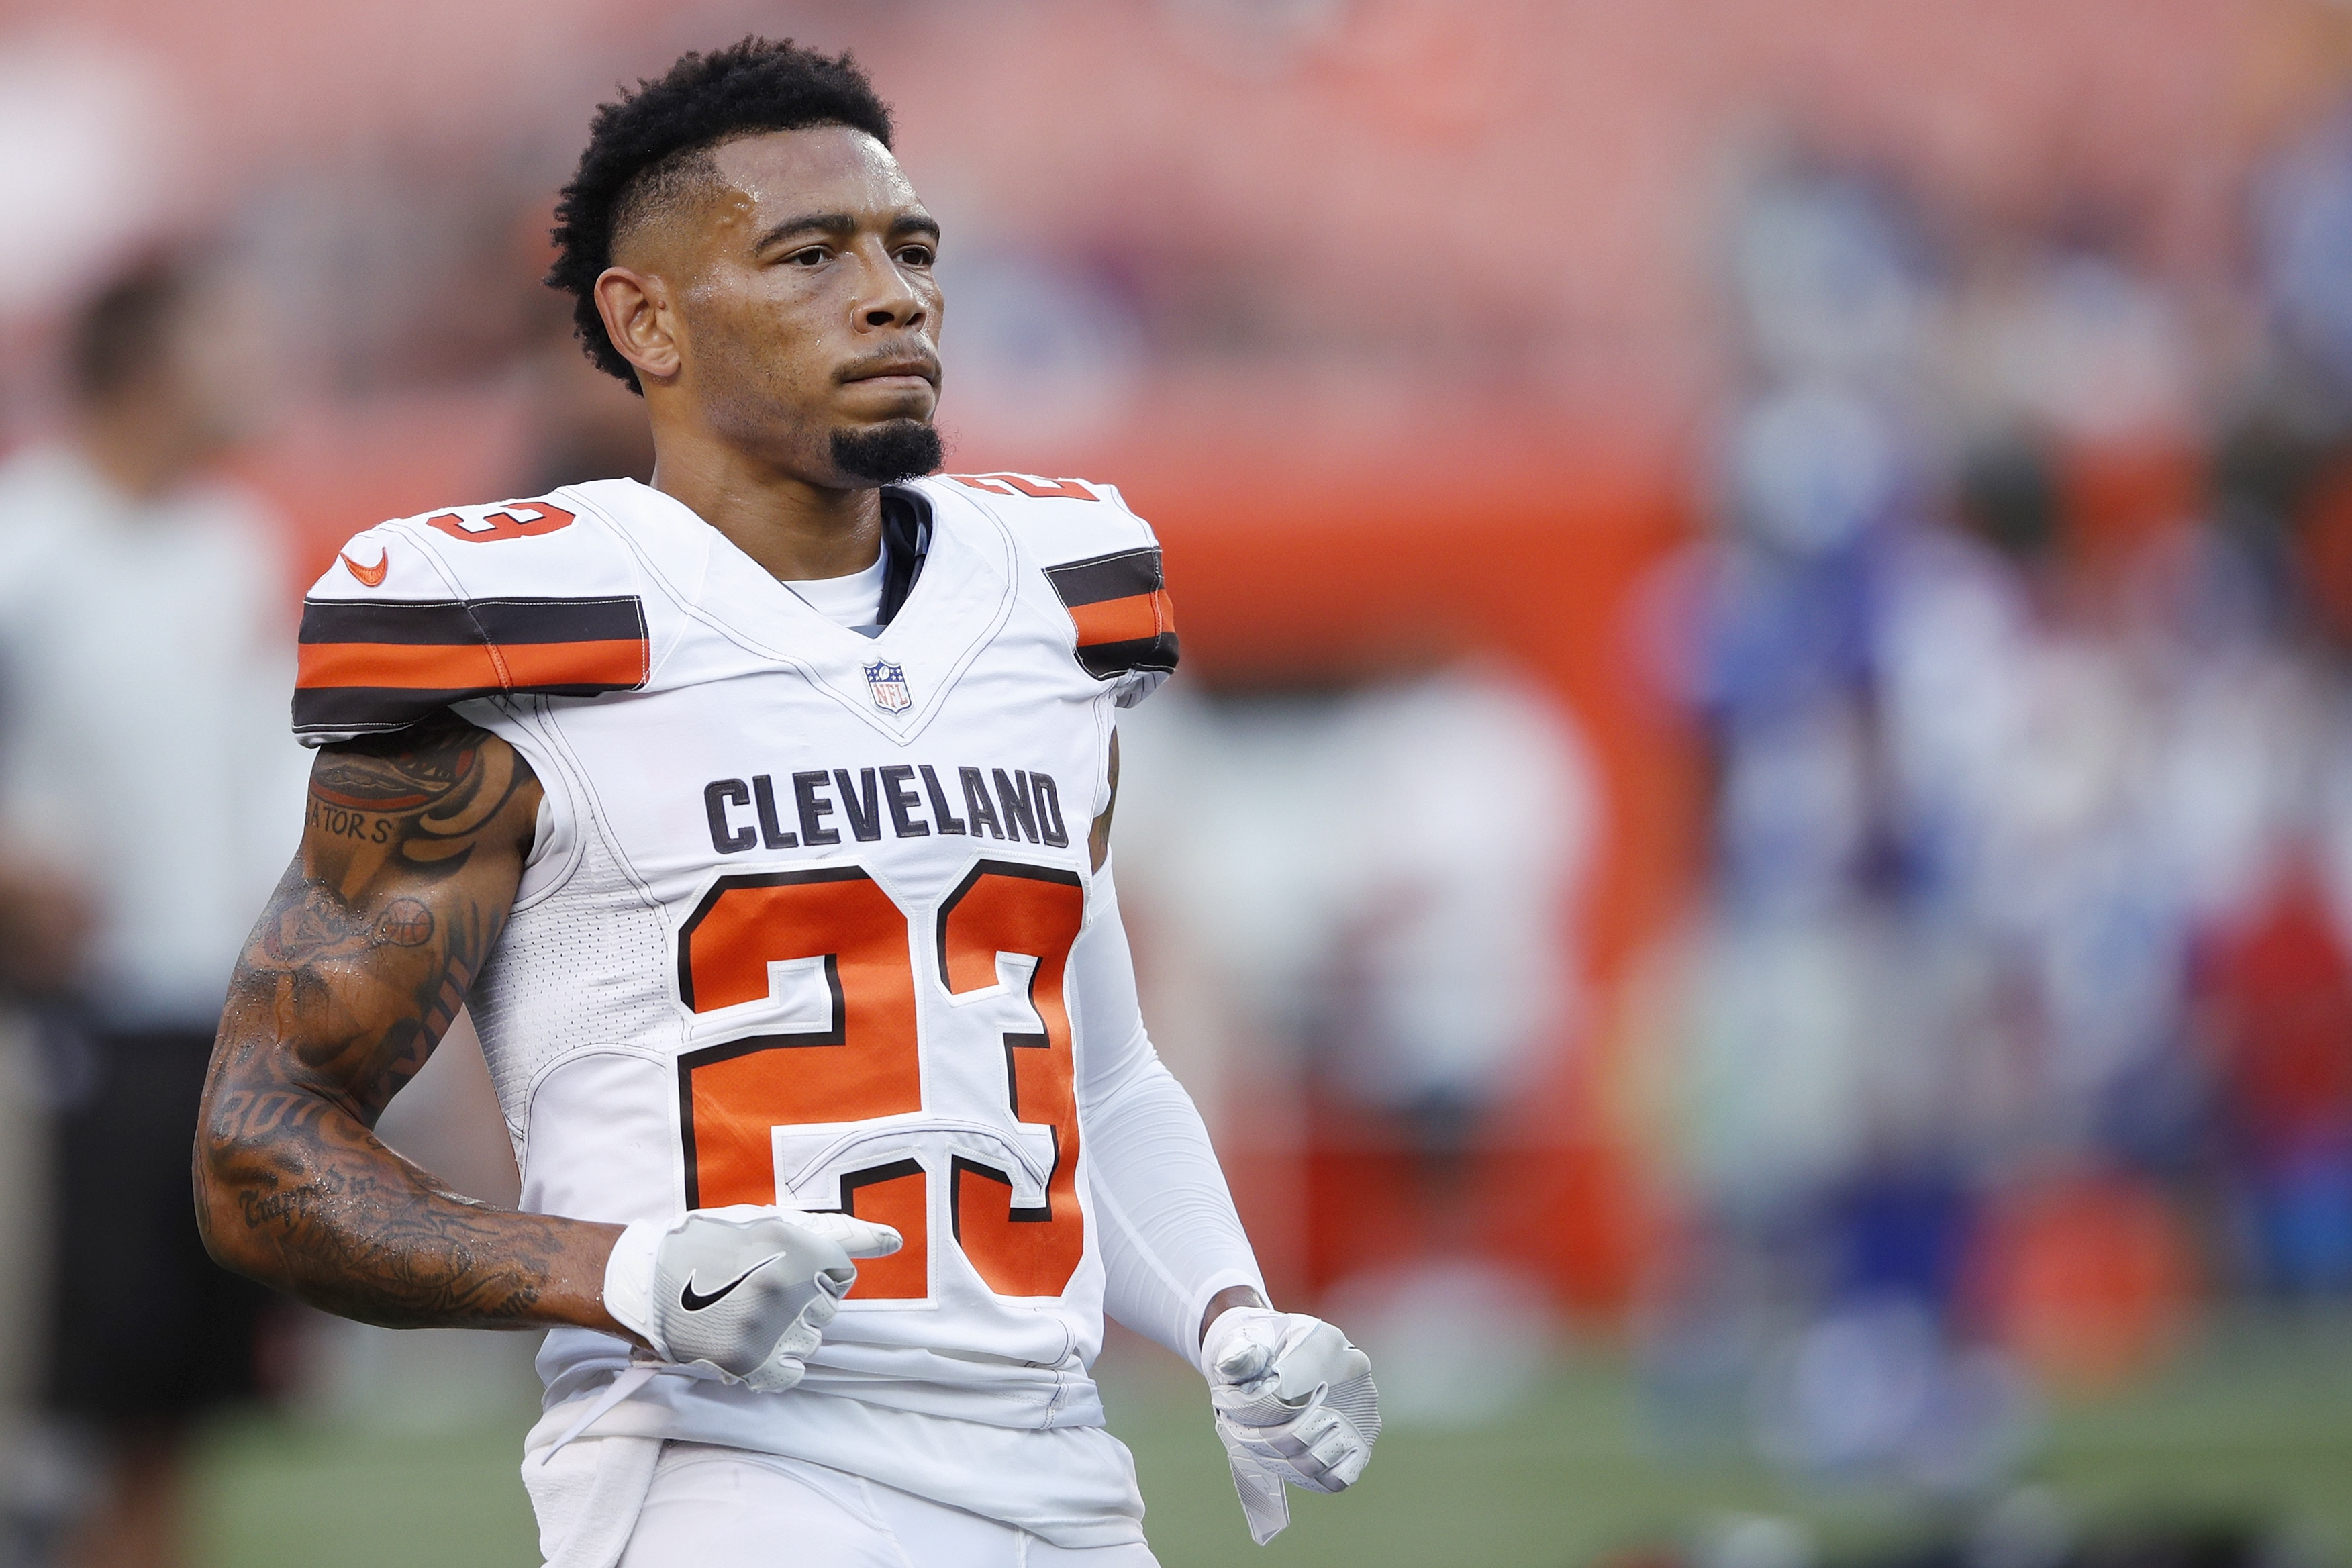 Browns want to move Haden